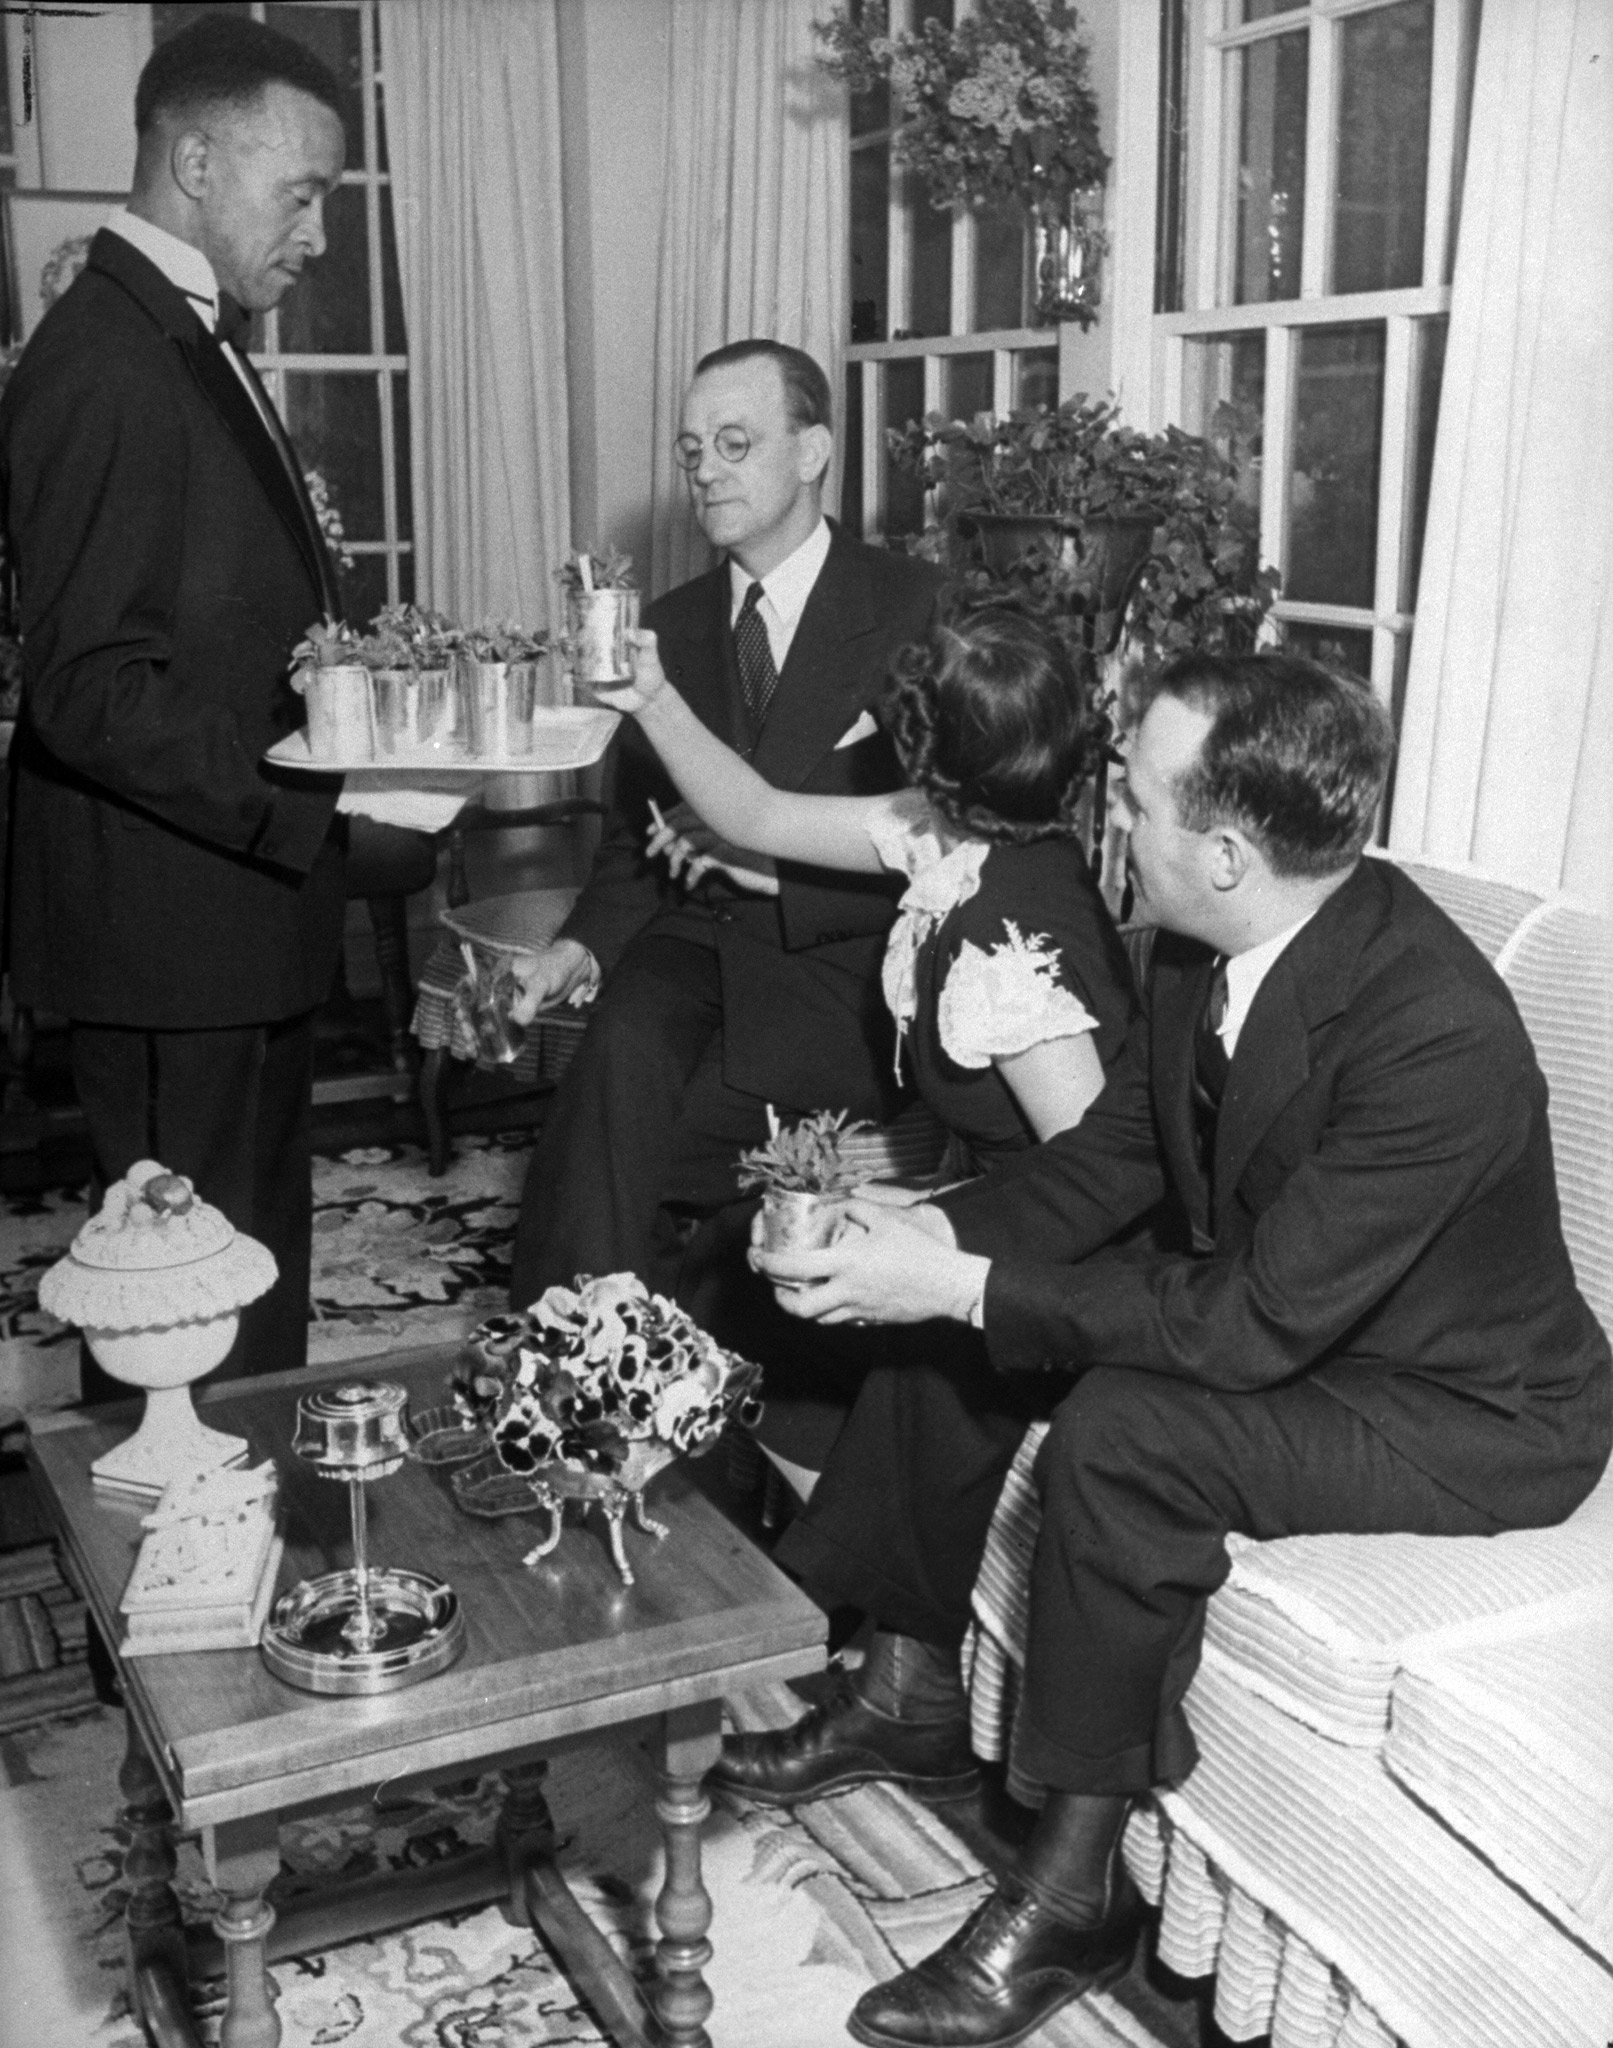 Caption from LIFE. Congenial celebrants at the Van Winkle mint julep party included, from left to right, T. V. Hartnett, tobacco bigwig; Mary Van Winkle, the host's daughter; Richard Dewey.